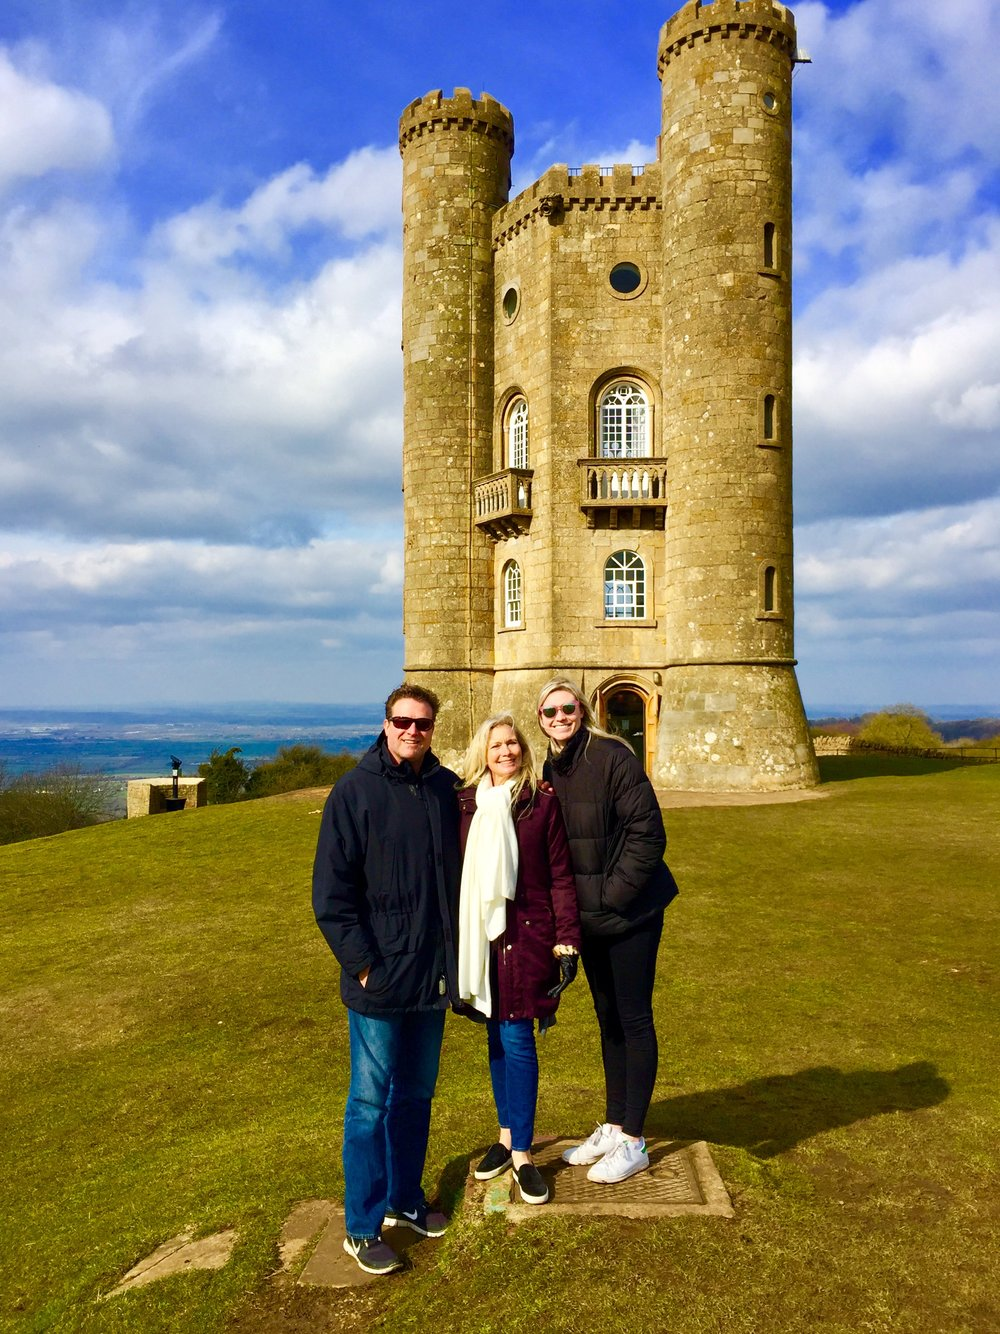 The tall Hodsons in front of a suitable castle in the Cotswolds, UK. (It's only a model.)